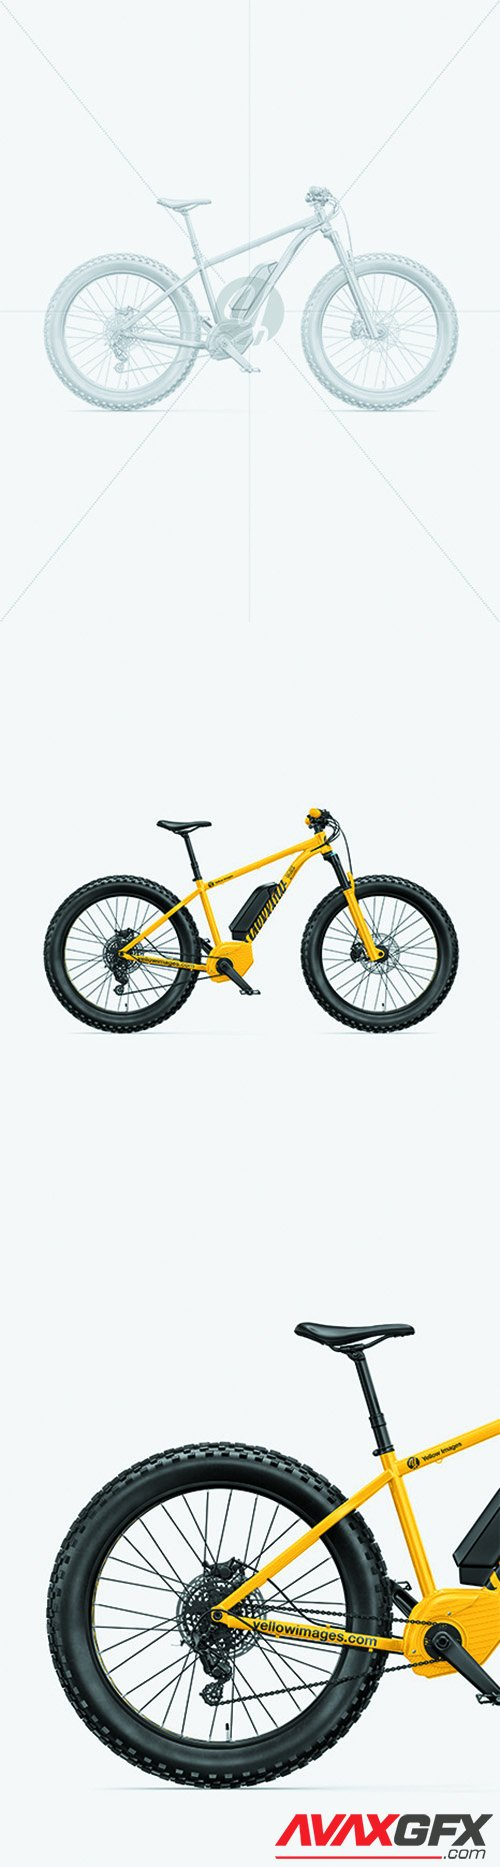 Fat Bike Mockup - Right Side View 68684